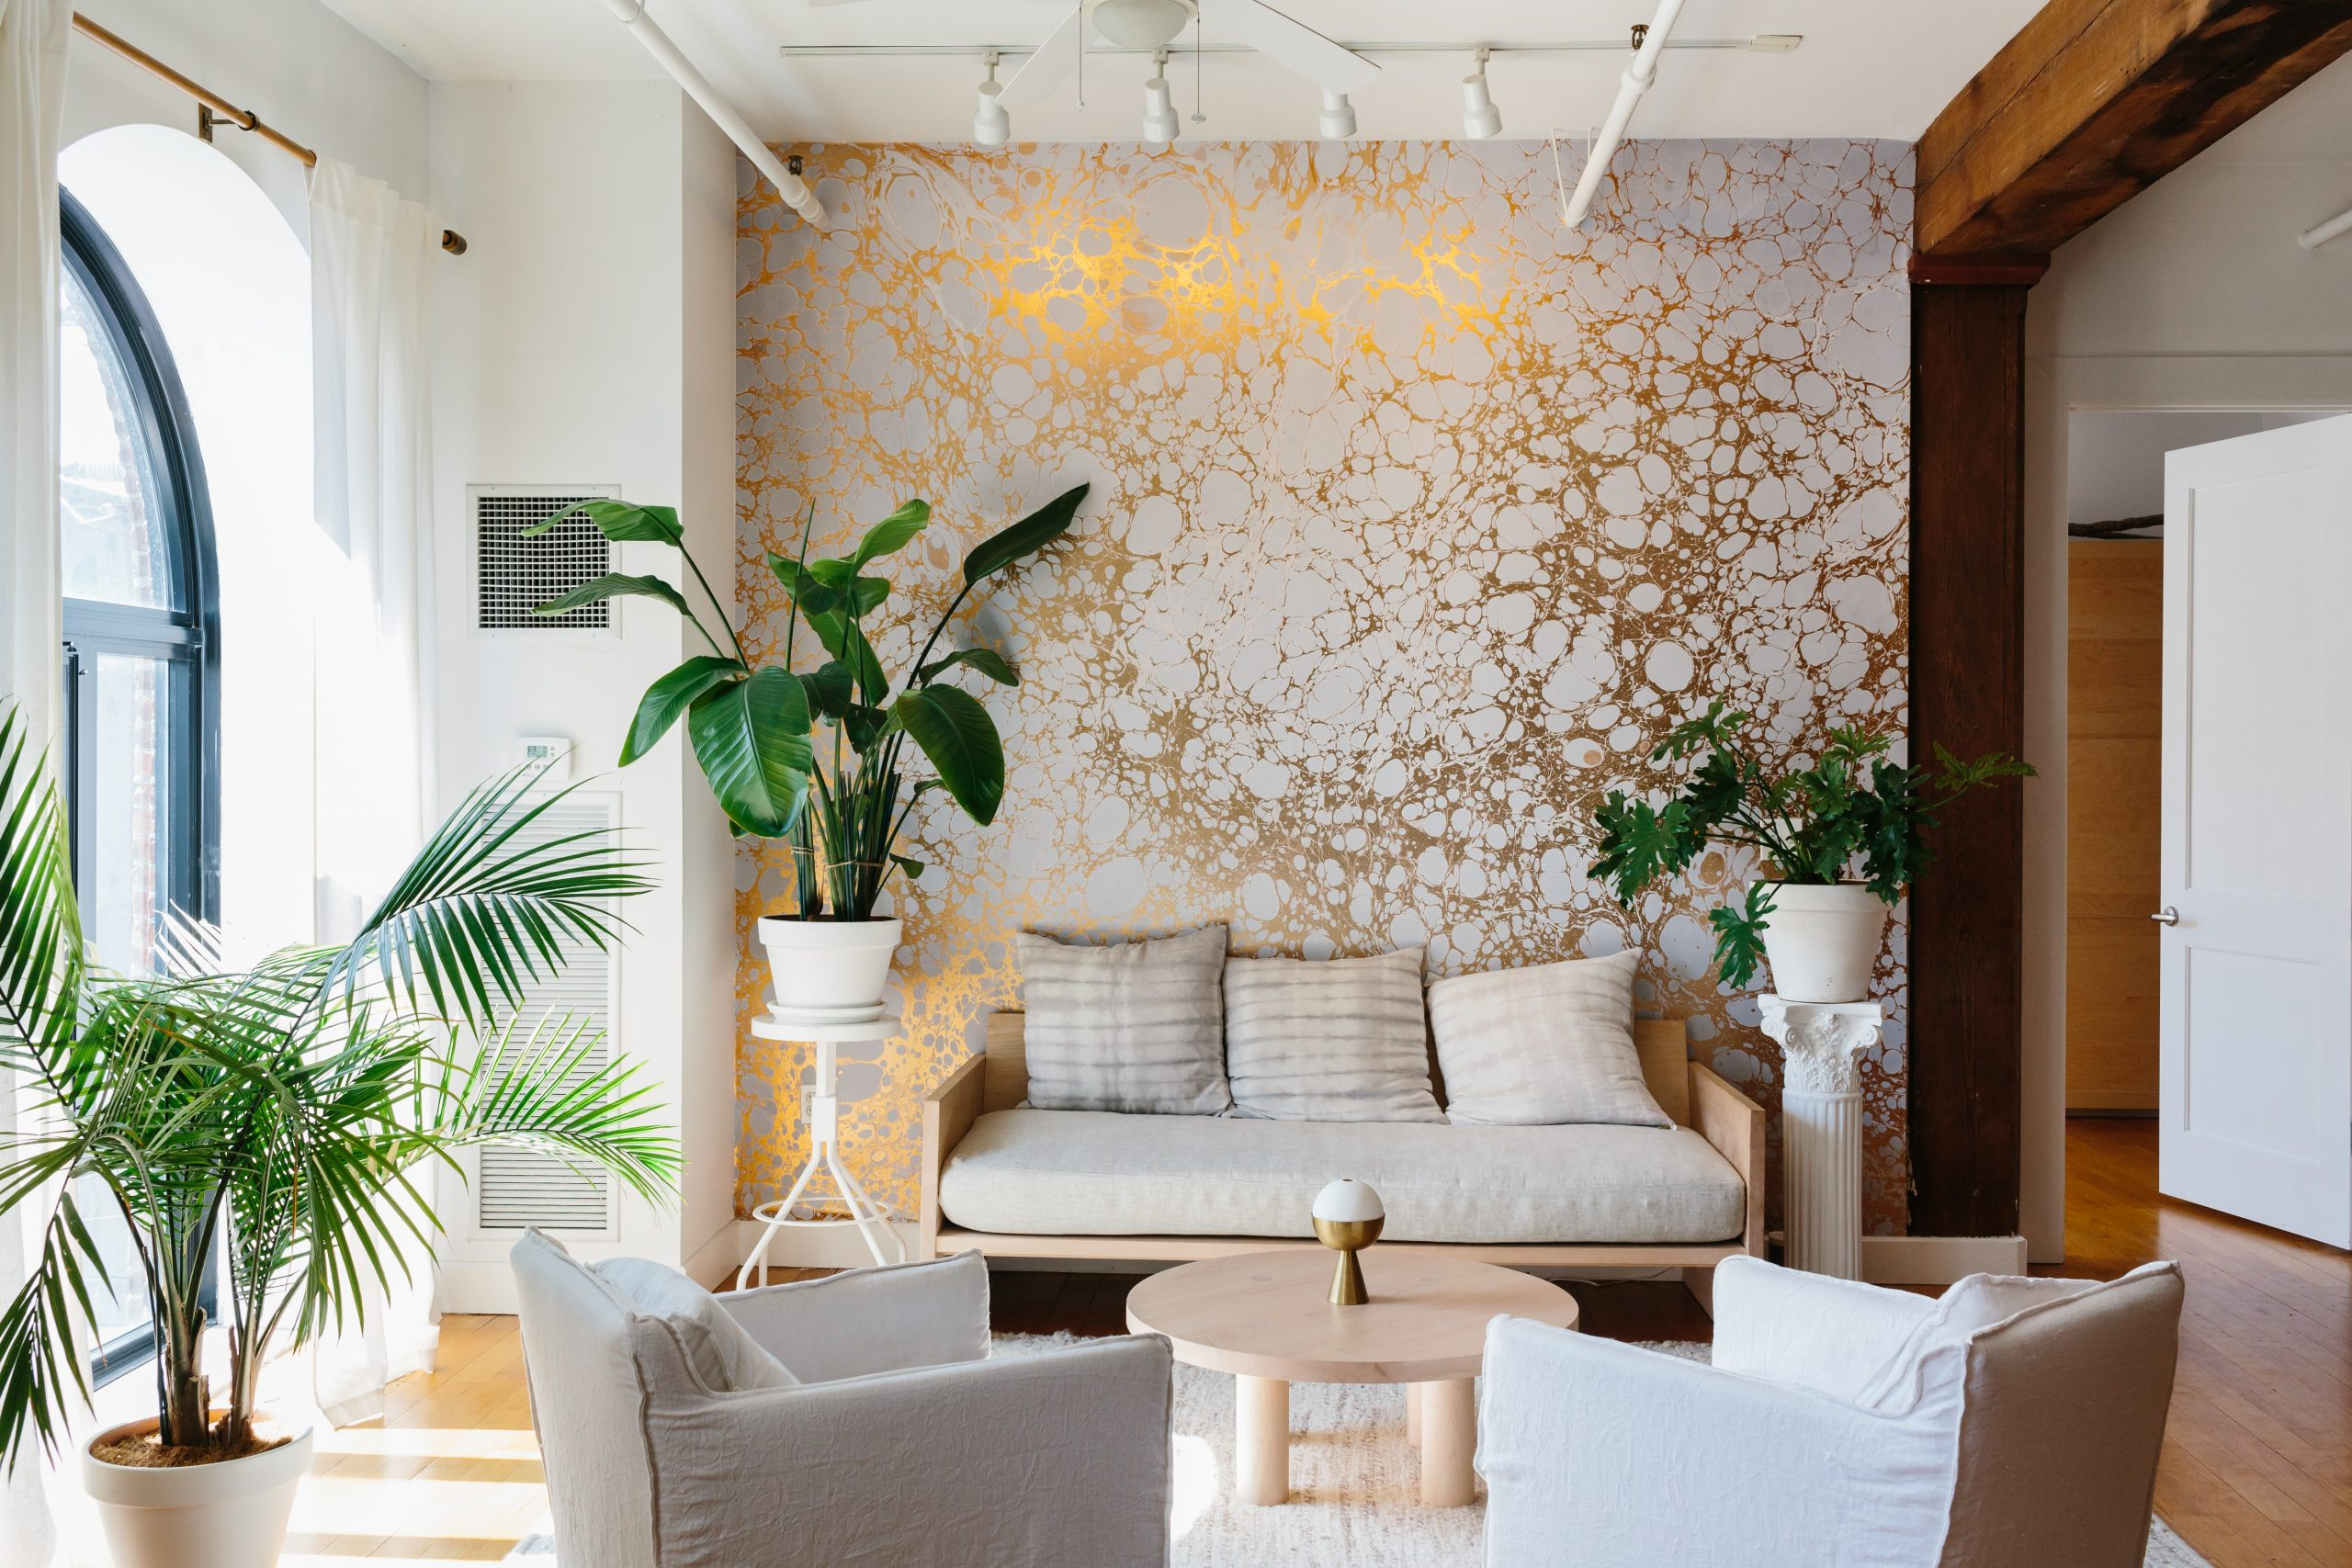 Interior of a designer's loft with an accent wall